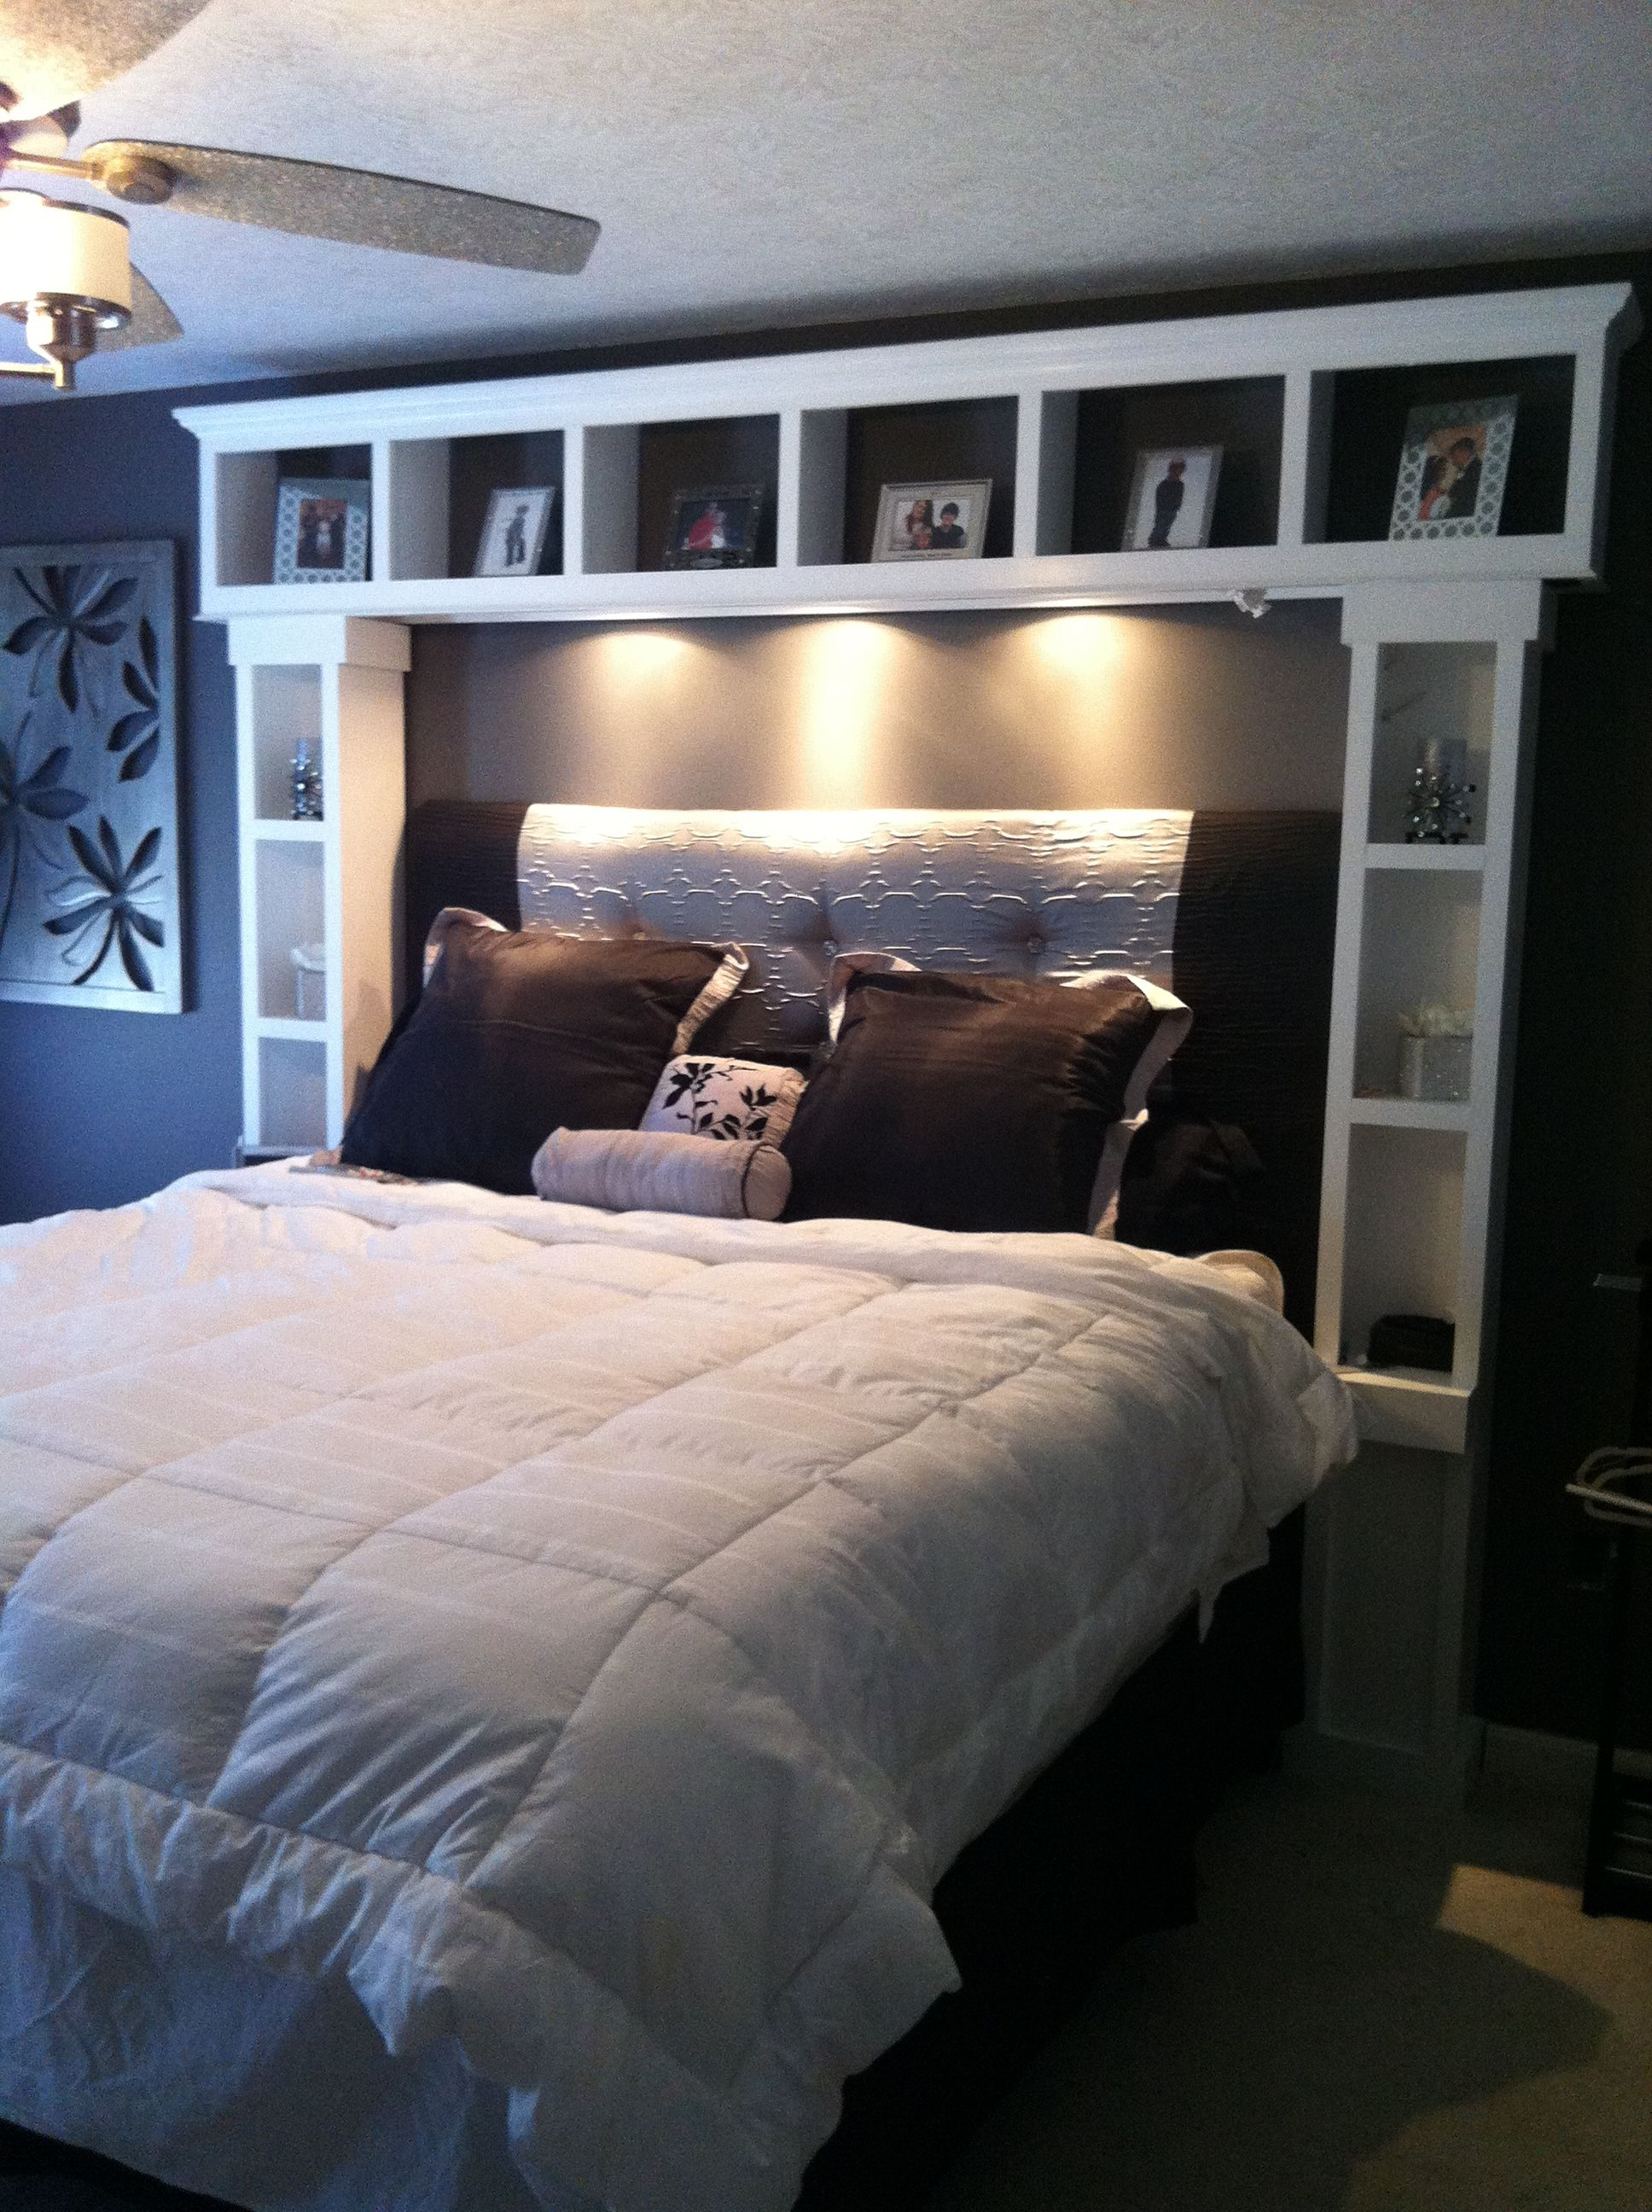 Diy Bed I Want These Shelves Its Like Our Headboard Times 10